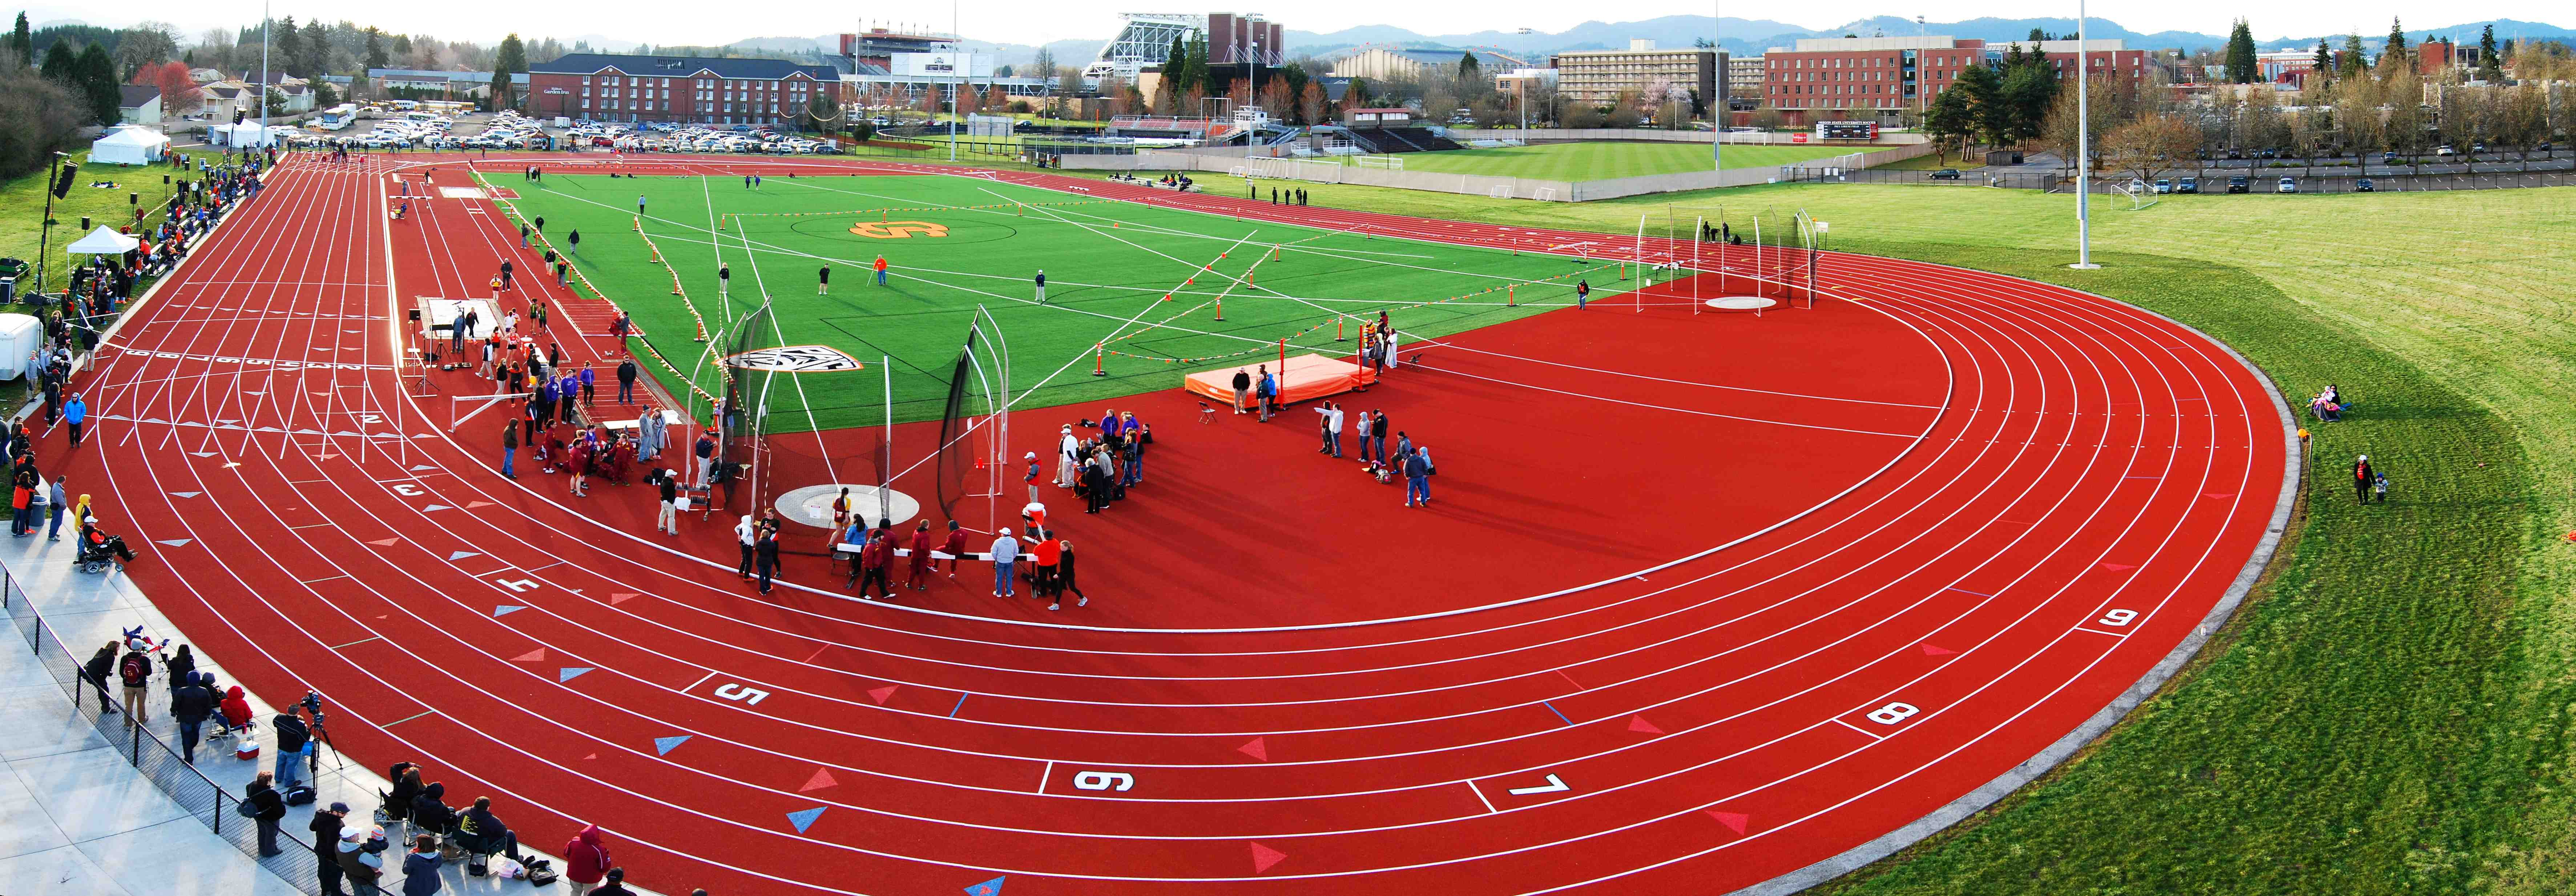 track and field Get information, facts, and pictures about track and field athletics at encyclopediacom make research projects and school reports about track and field athletics.